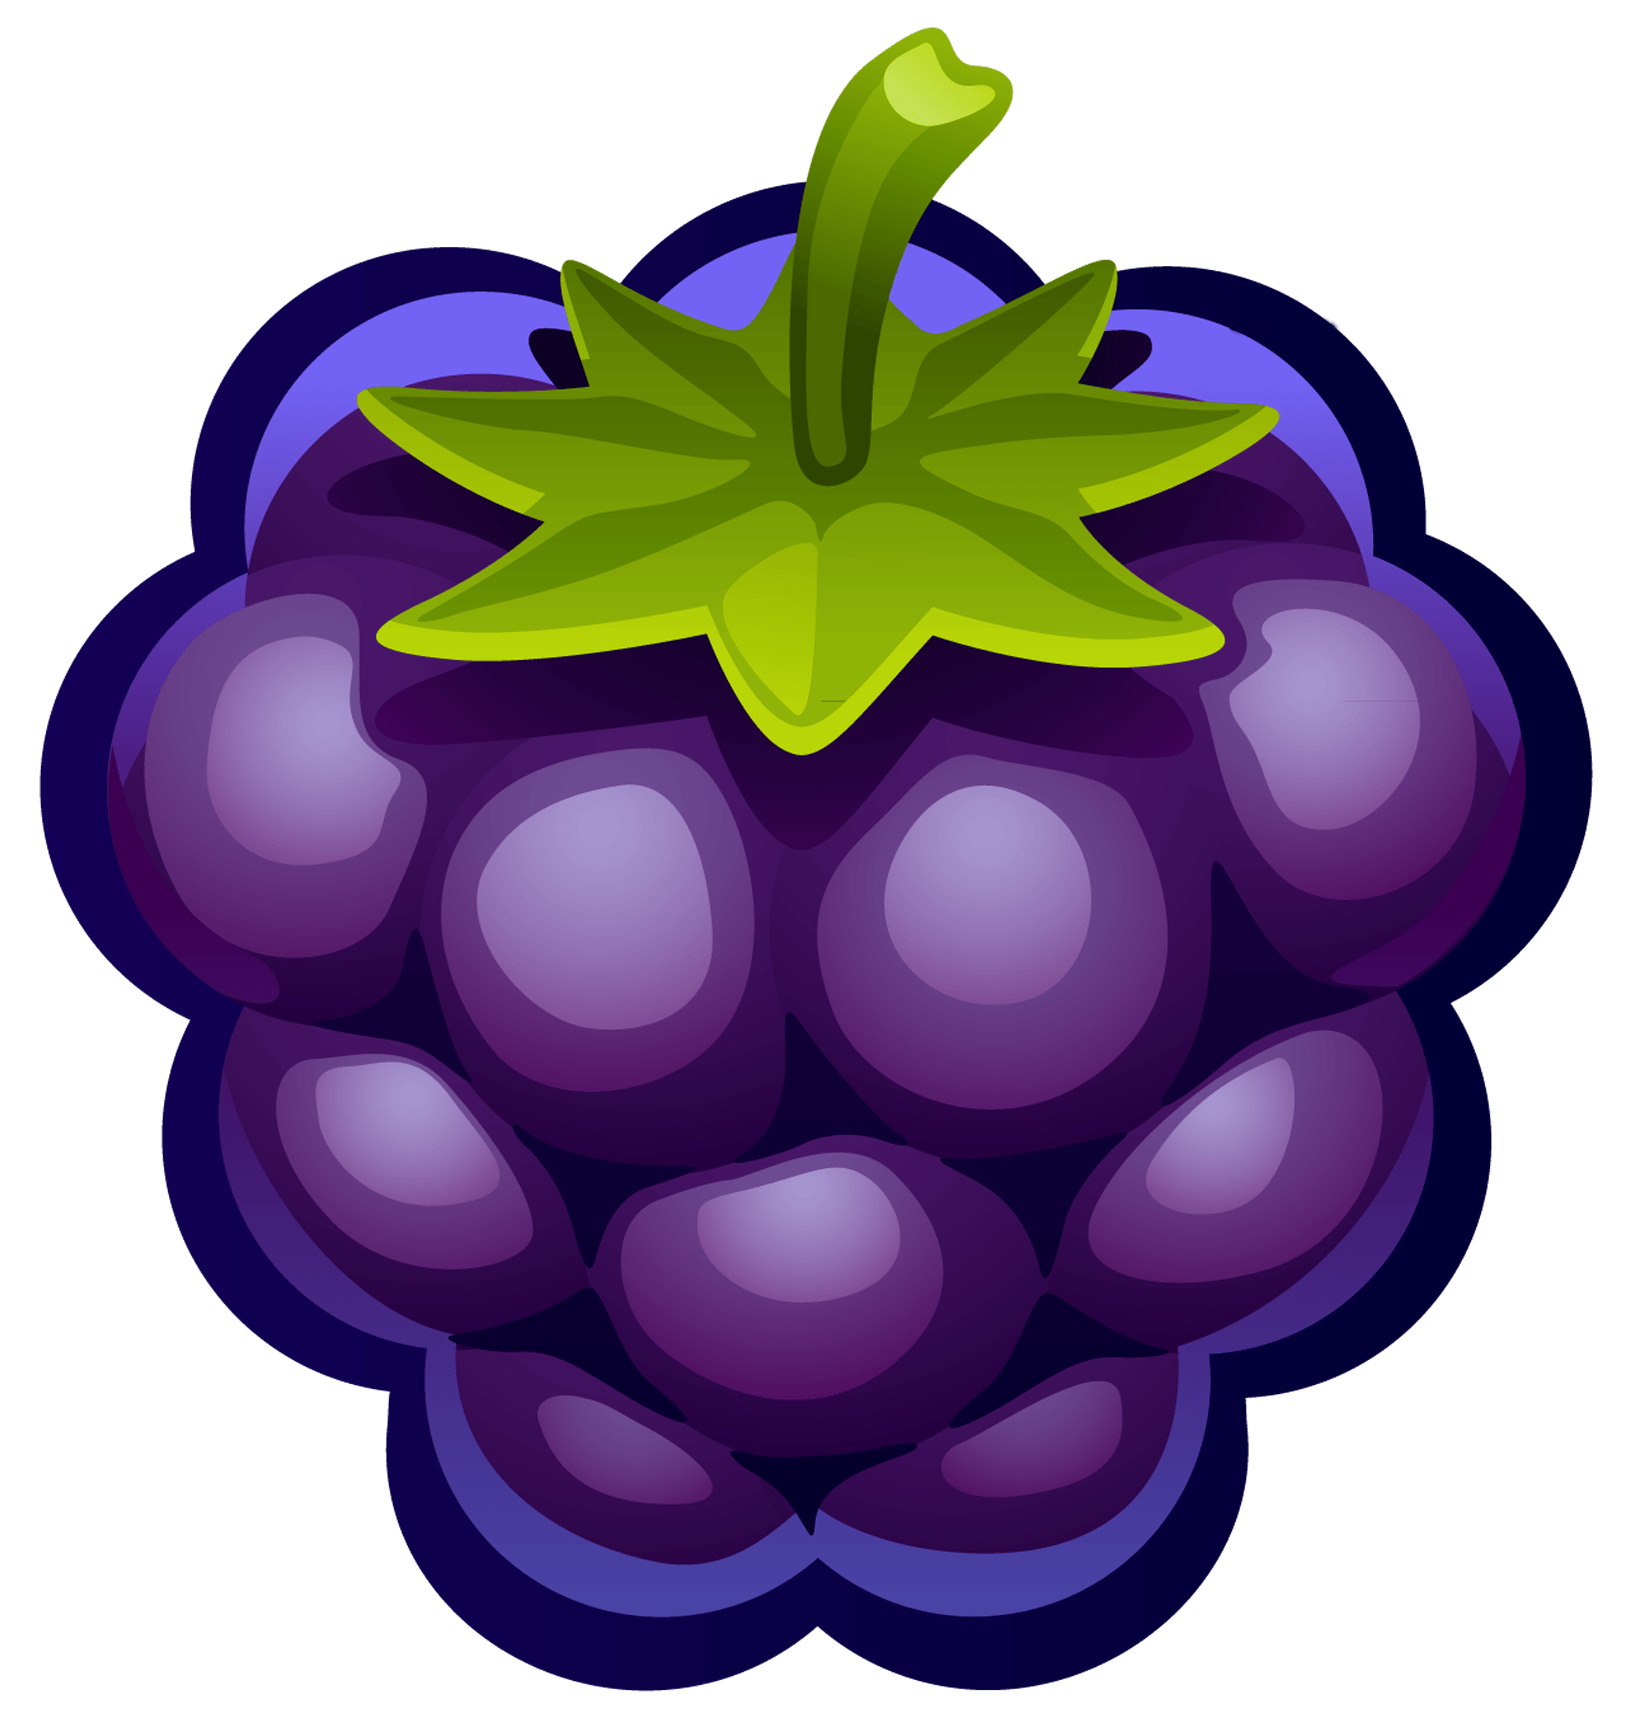 Grape clipart violet Inspiration Clipart Art Grape Others